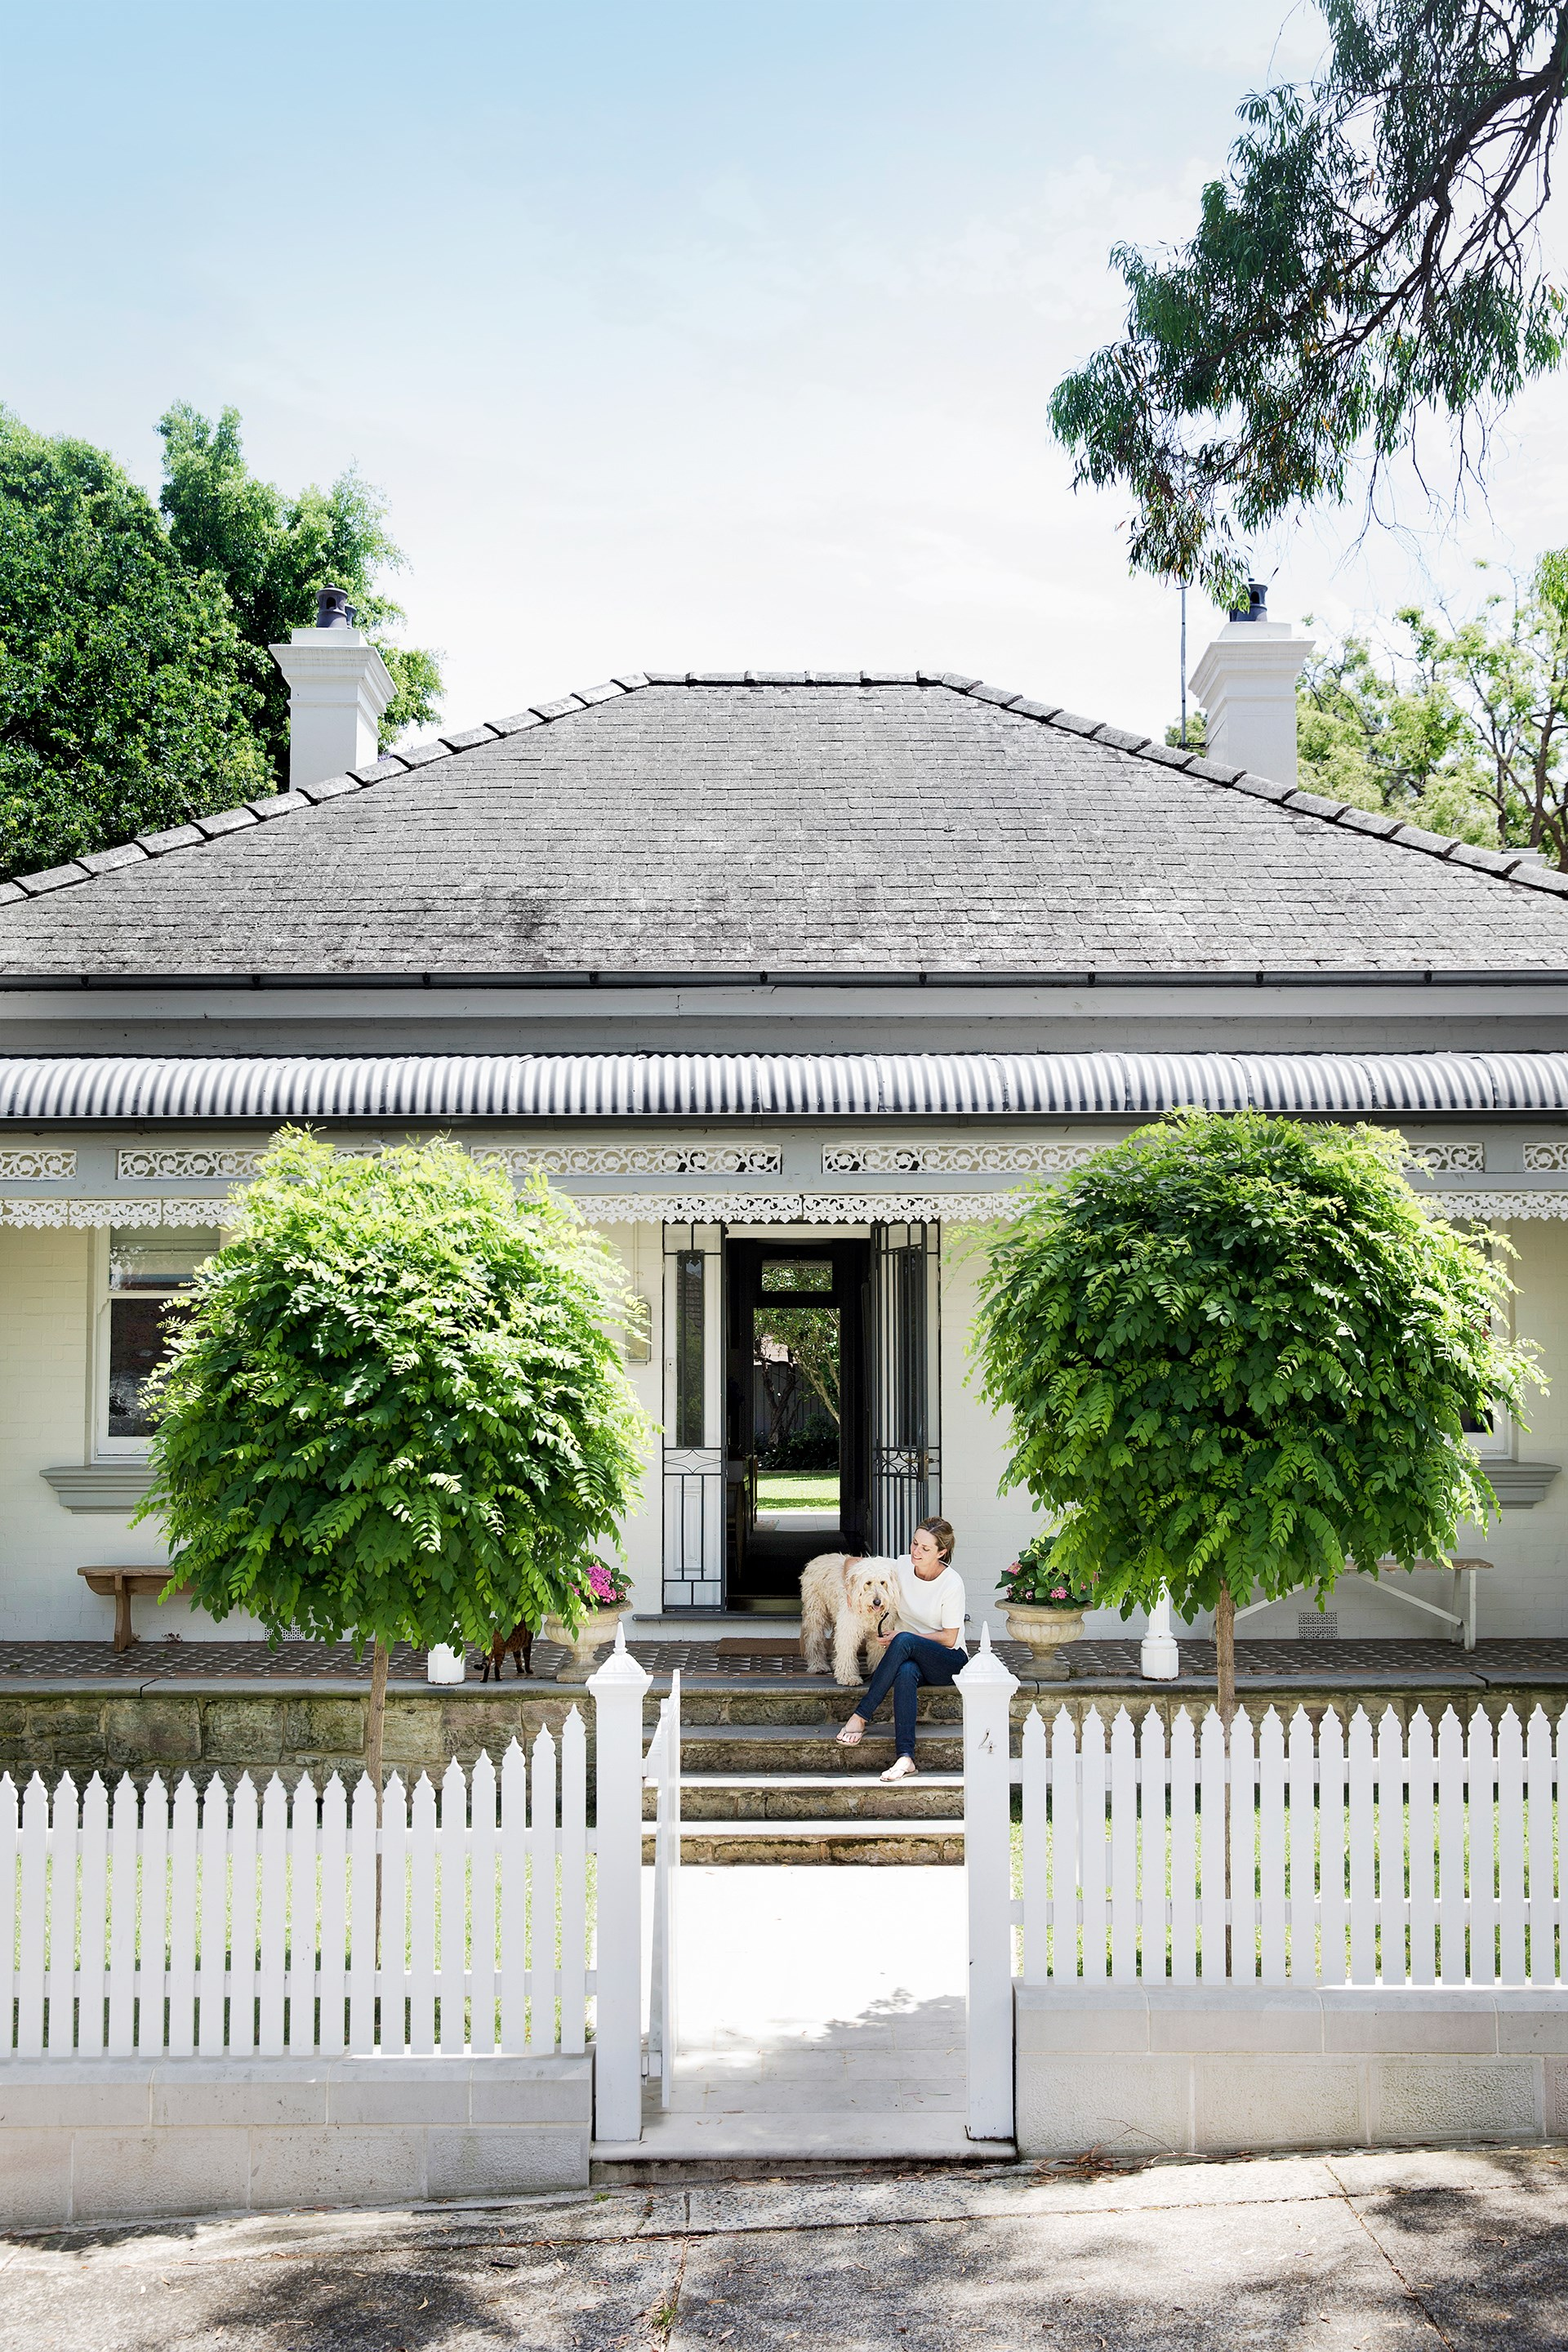 This 19th century cottage looks cute-as-pie at the front, while the back has been completely overhauled with a gargantuan shed-like extension. Take a tour of this [interior designer's own home renovation](http://www.homestolove.com.au/gallery-refreshing-extension-for-old-sydney-cottage-2755). Photo: Chris Warnes / *Australian House & Garden*